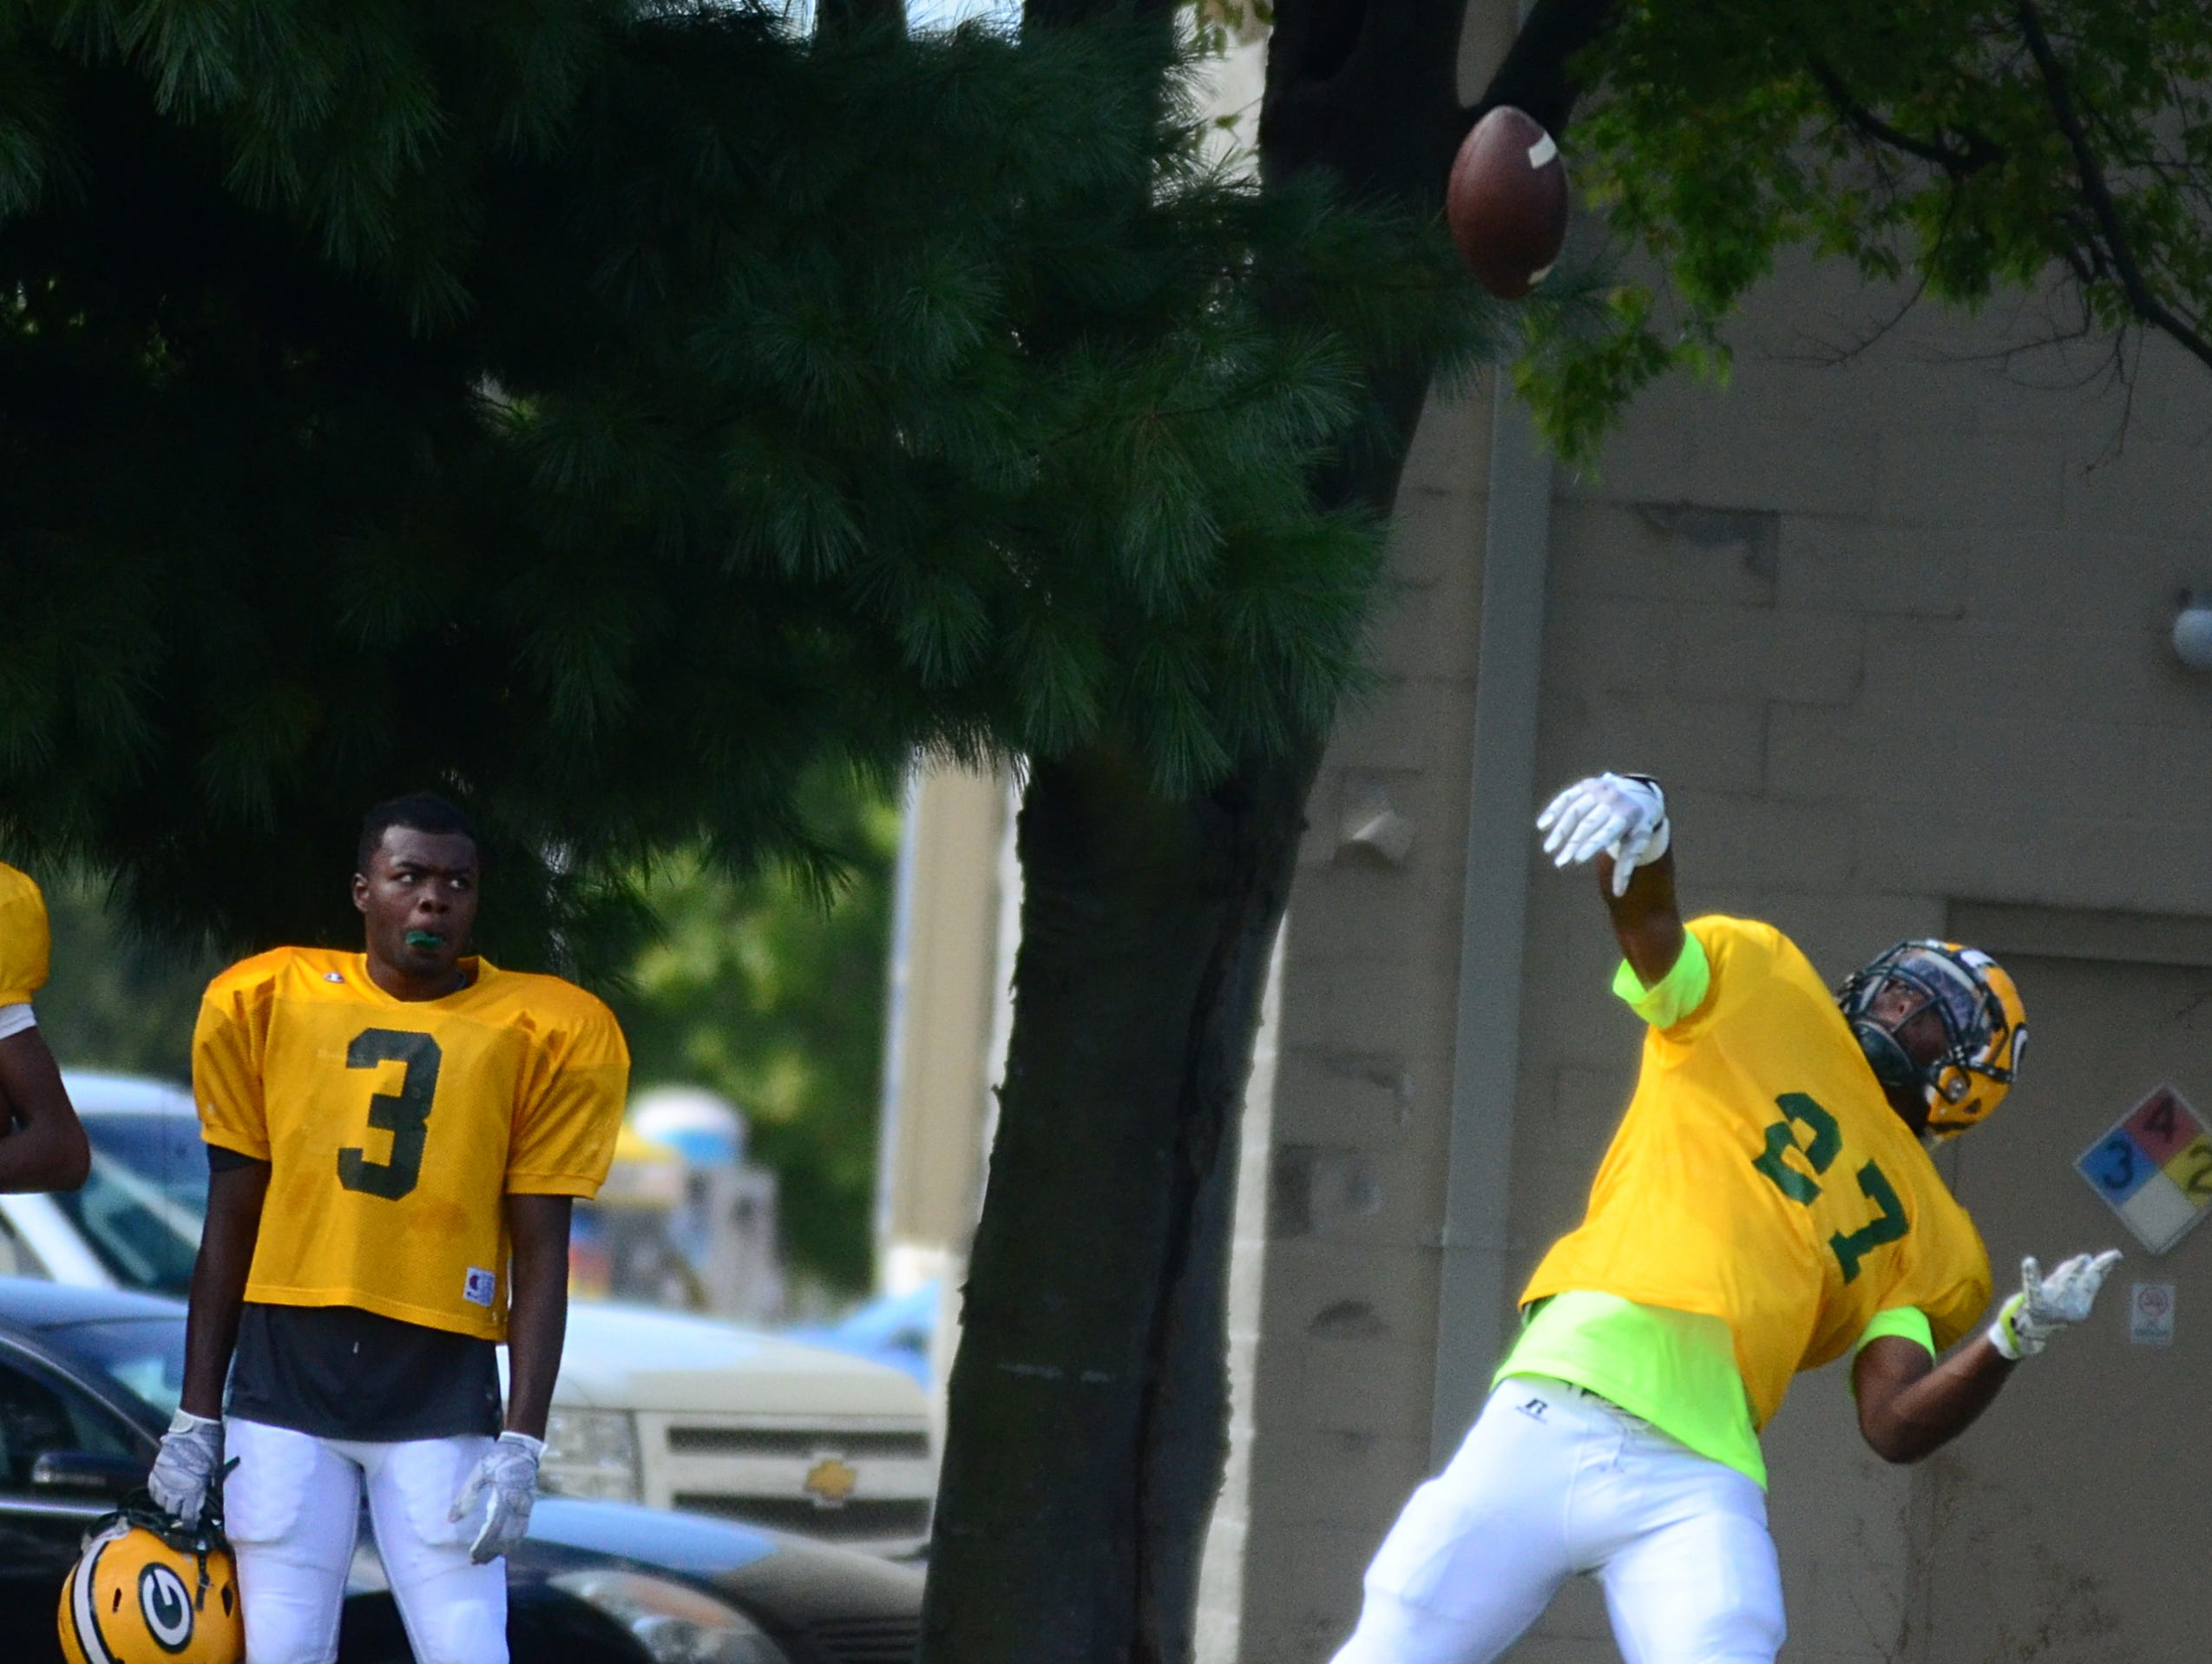 Gallatin senior running back Jordan Mason throws a pass during a break in practice as classmate Marcus DeVault looks on during Tuesday's practice session.